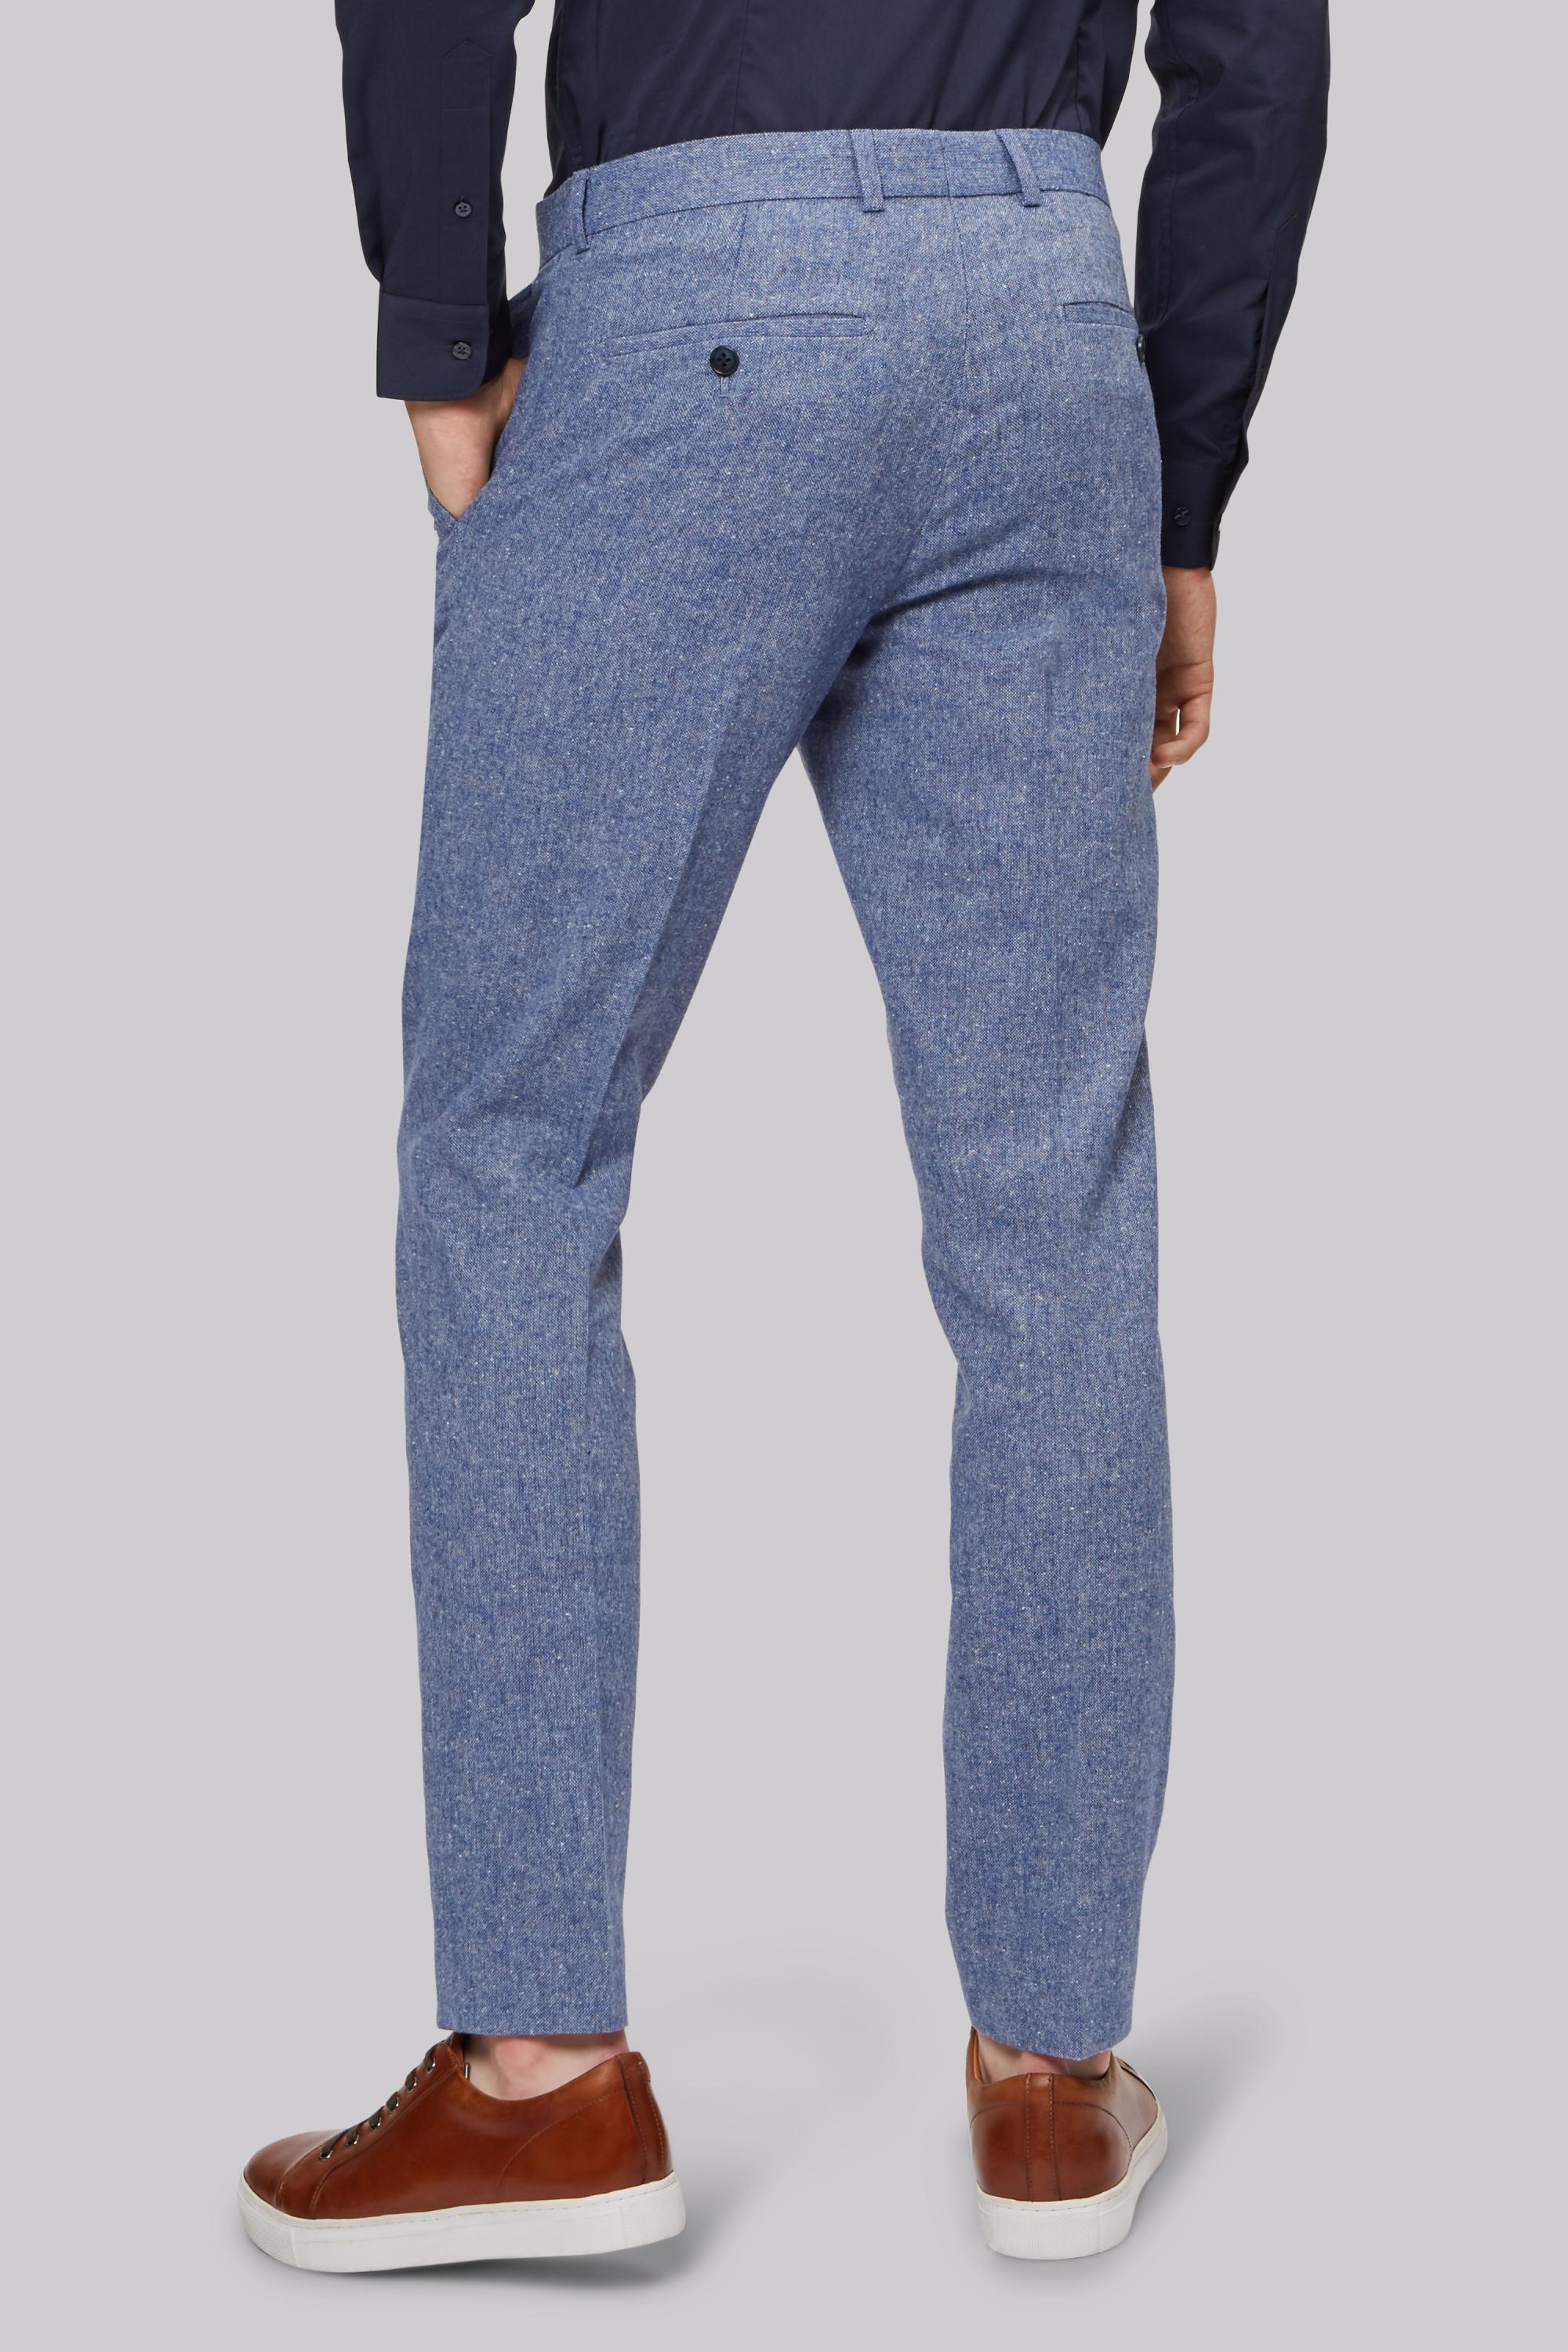 Moss London Synthetic Skinny Fit Ice Blue Donegal Trouser for Men